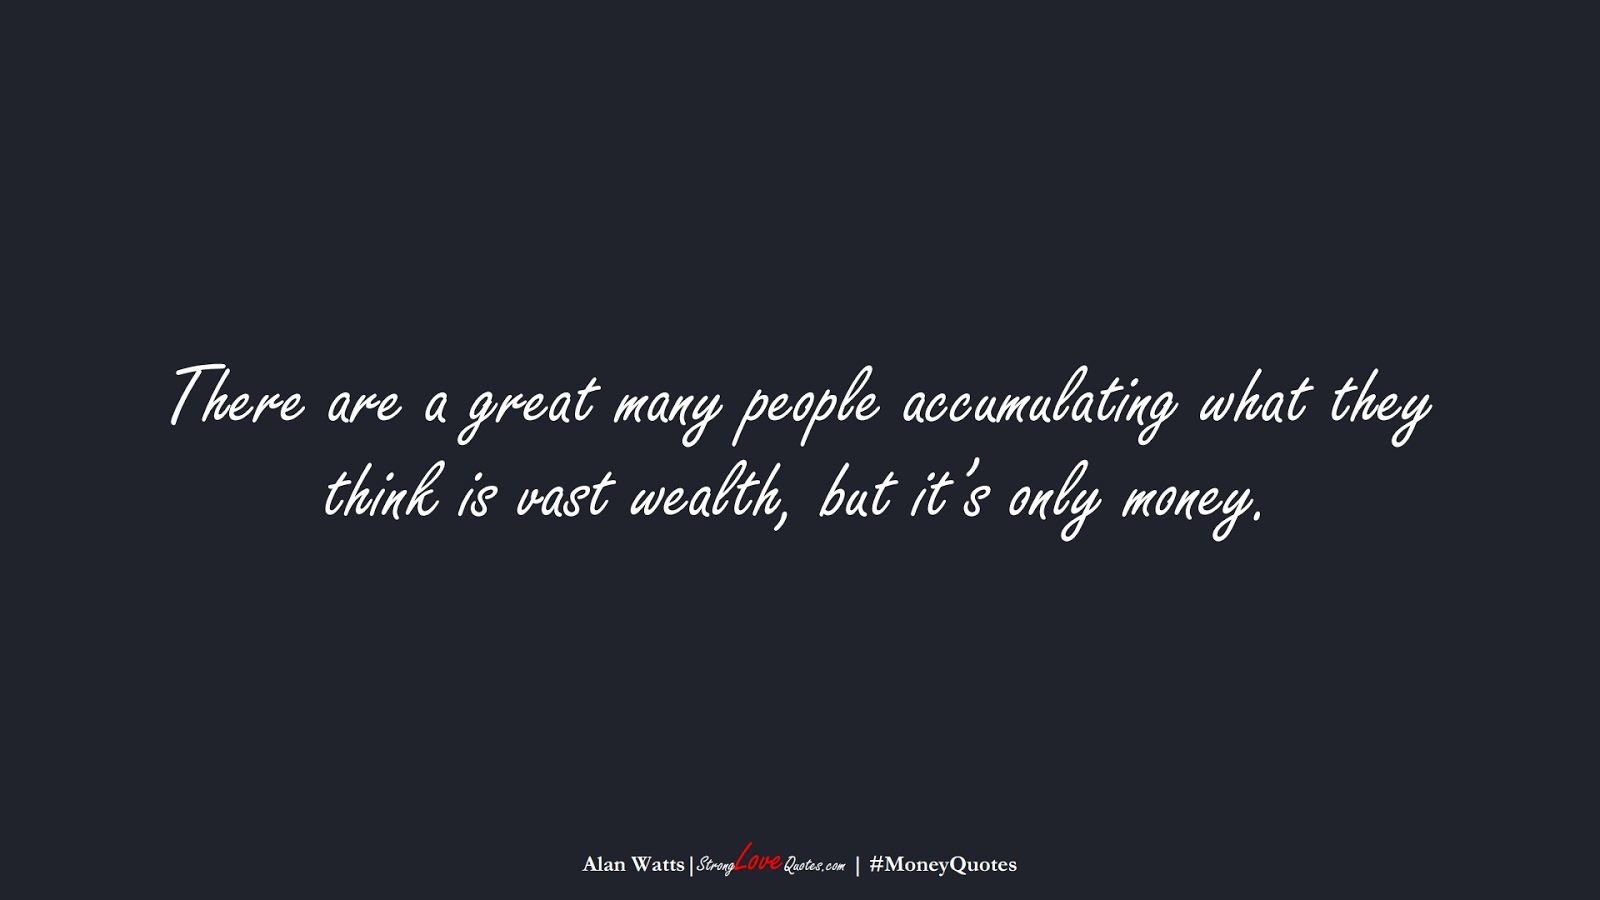 There are a great many people accumulating what they think is vast wealth, but it's only money. (Alan Watts);  #MoneyQuotes